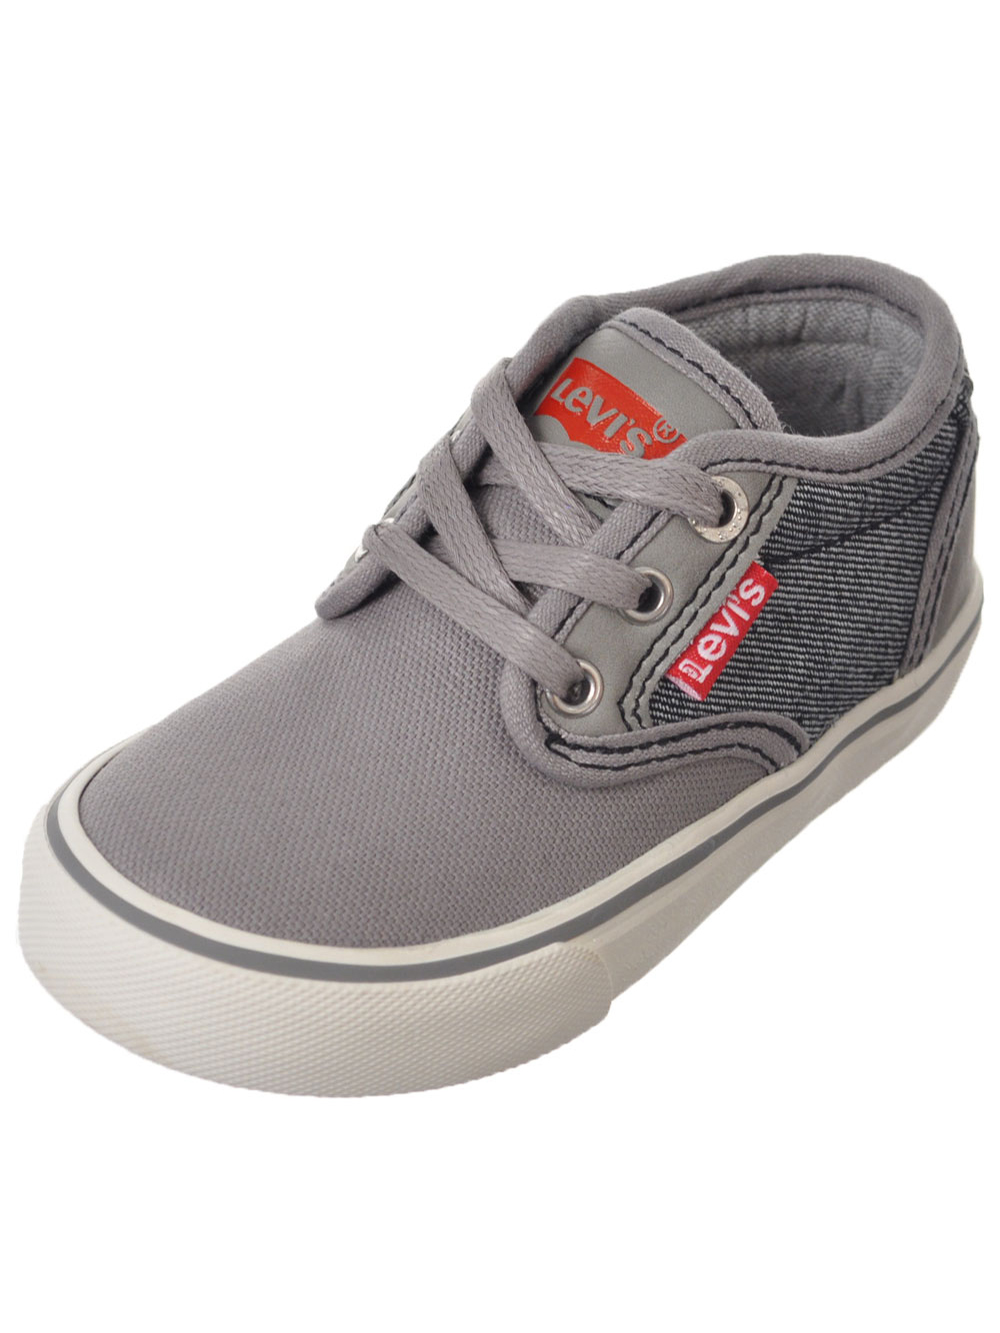 "Levi's Boys' ""Cali Denim"" Low-Top Sneakers (Toddler Sizes 5 - 10) - gray, 5 toddler"